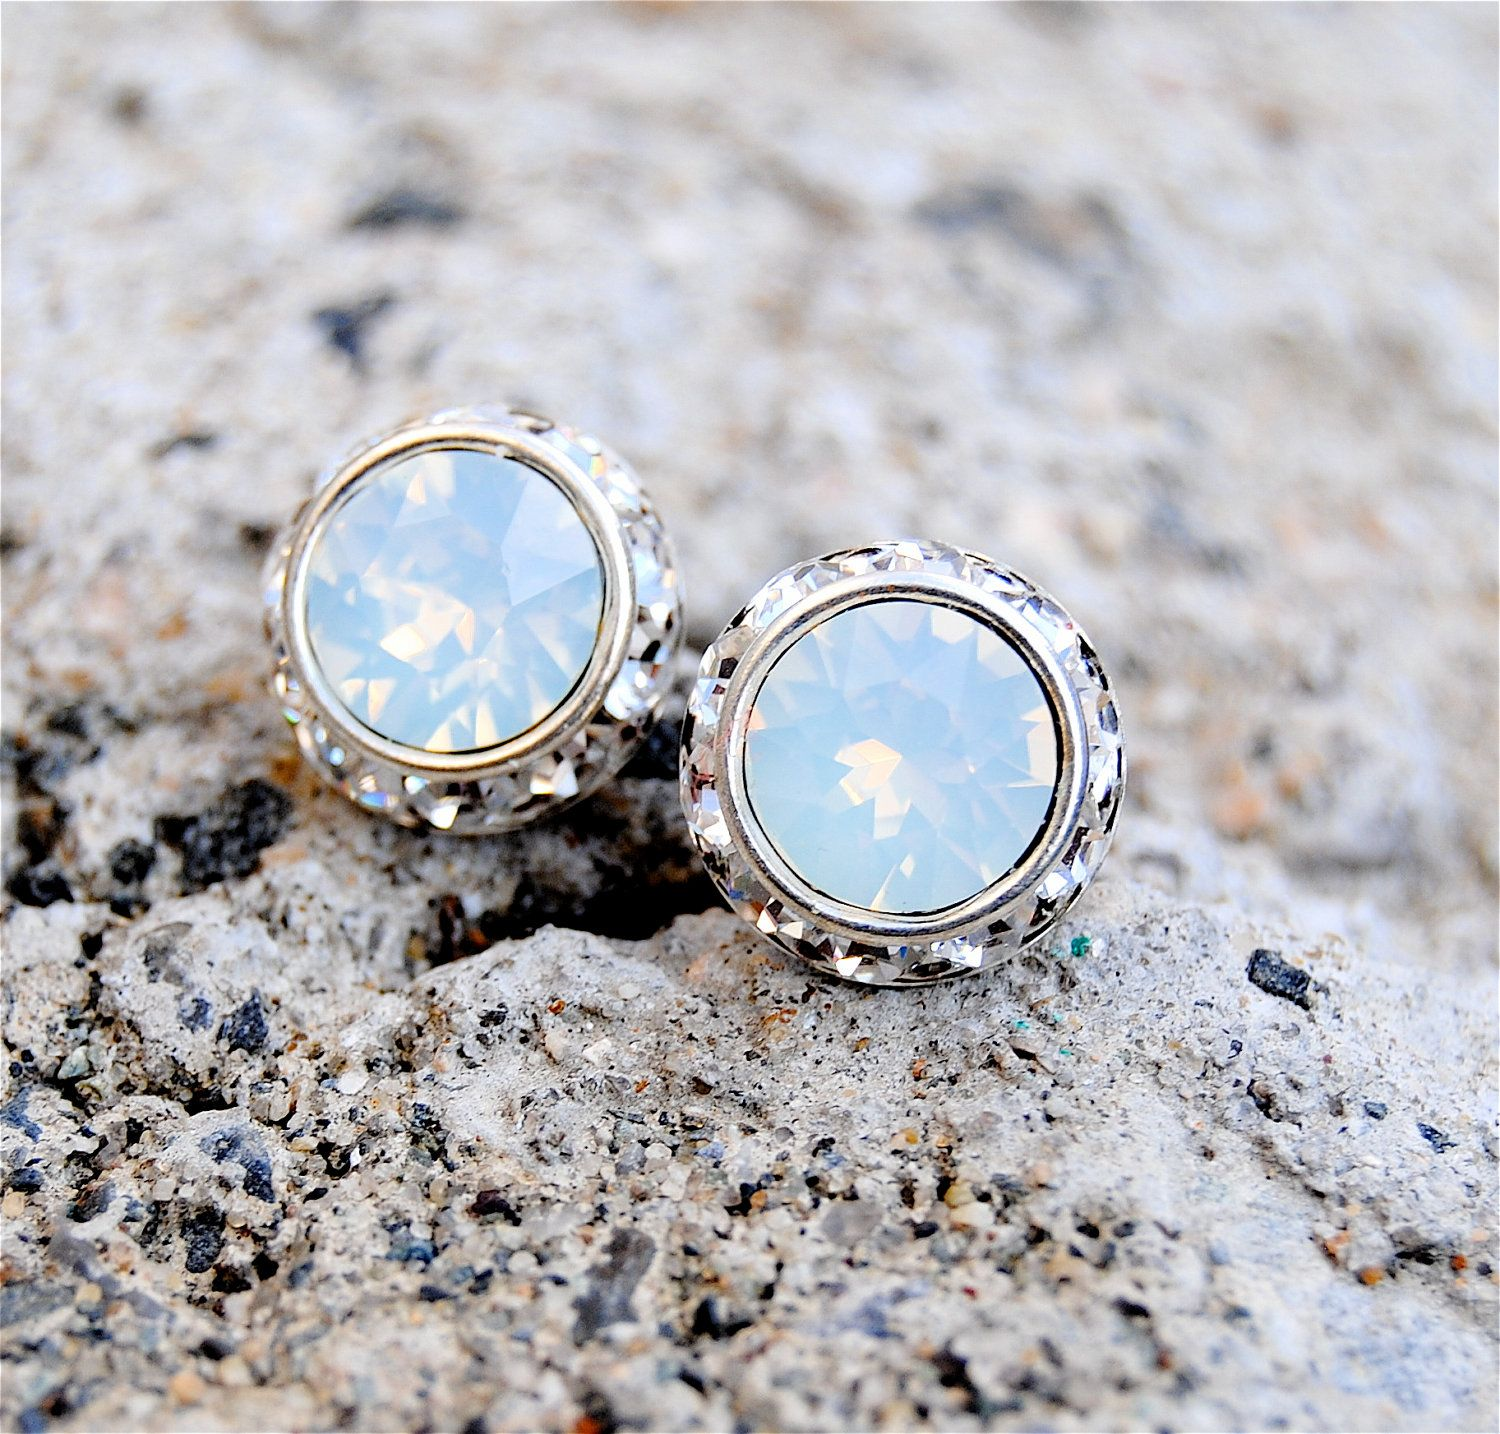 white etsy rhinestone via sparklers genuine swarovski sugar diamond pin small stud vintage opal earrings